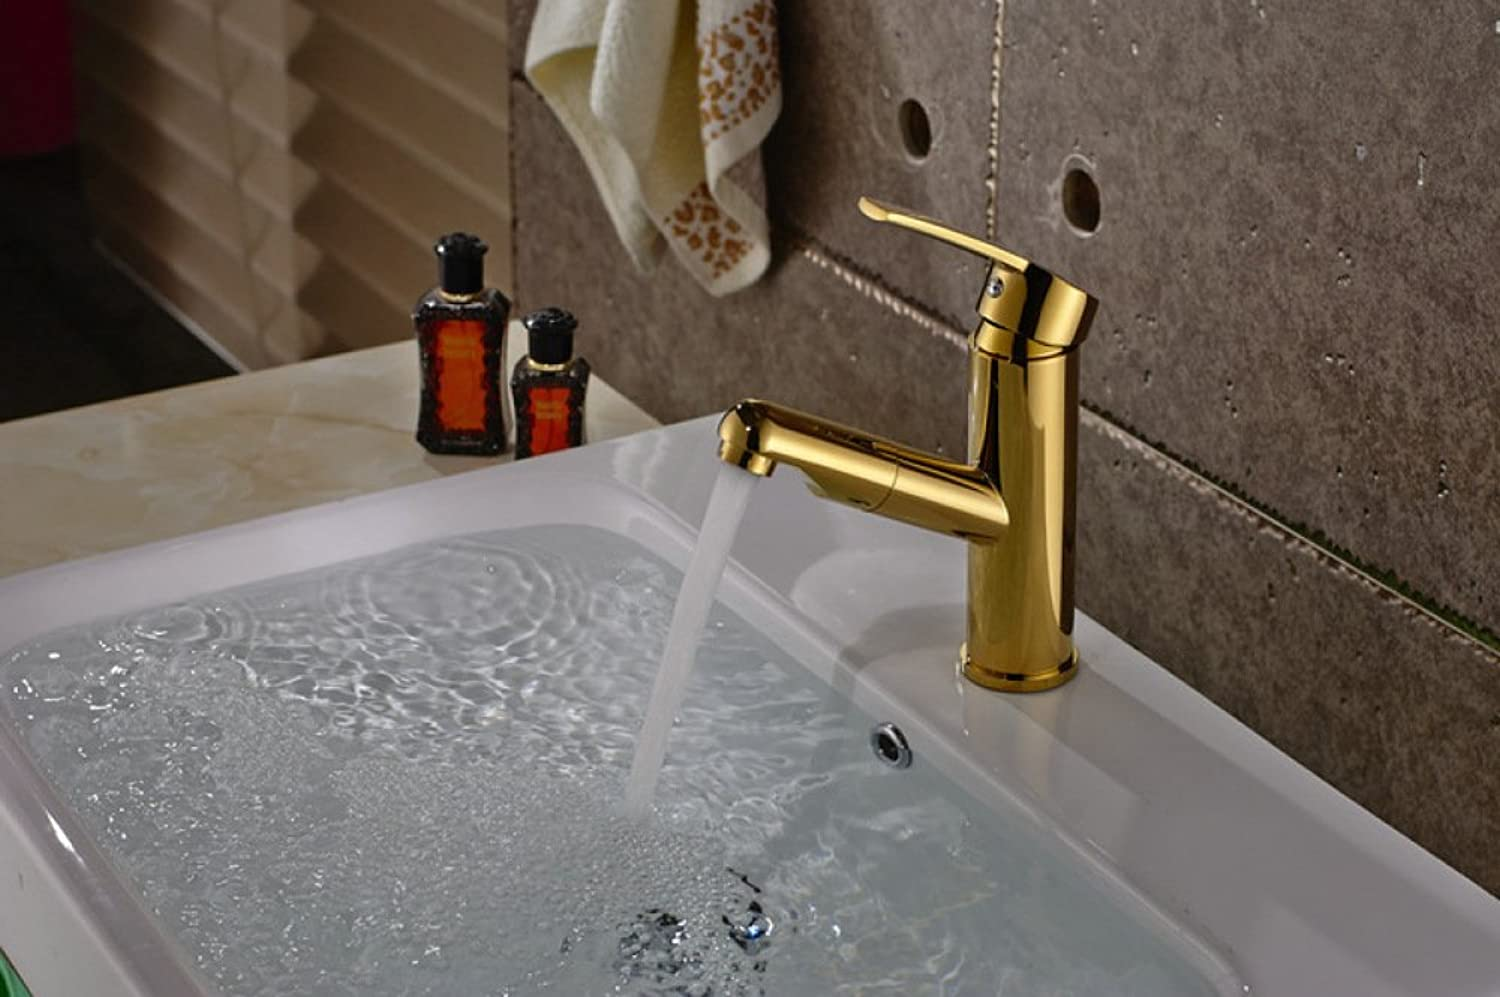 GZF Bathroom Sink Taps Faucet pull faucet full copper hot and cold telescopic basin heightening faucet washbasin washbasin faucet mixing faucet washbasin faucet